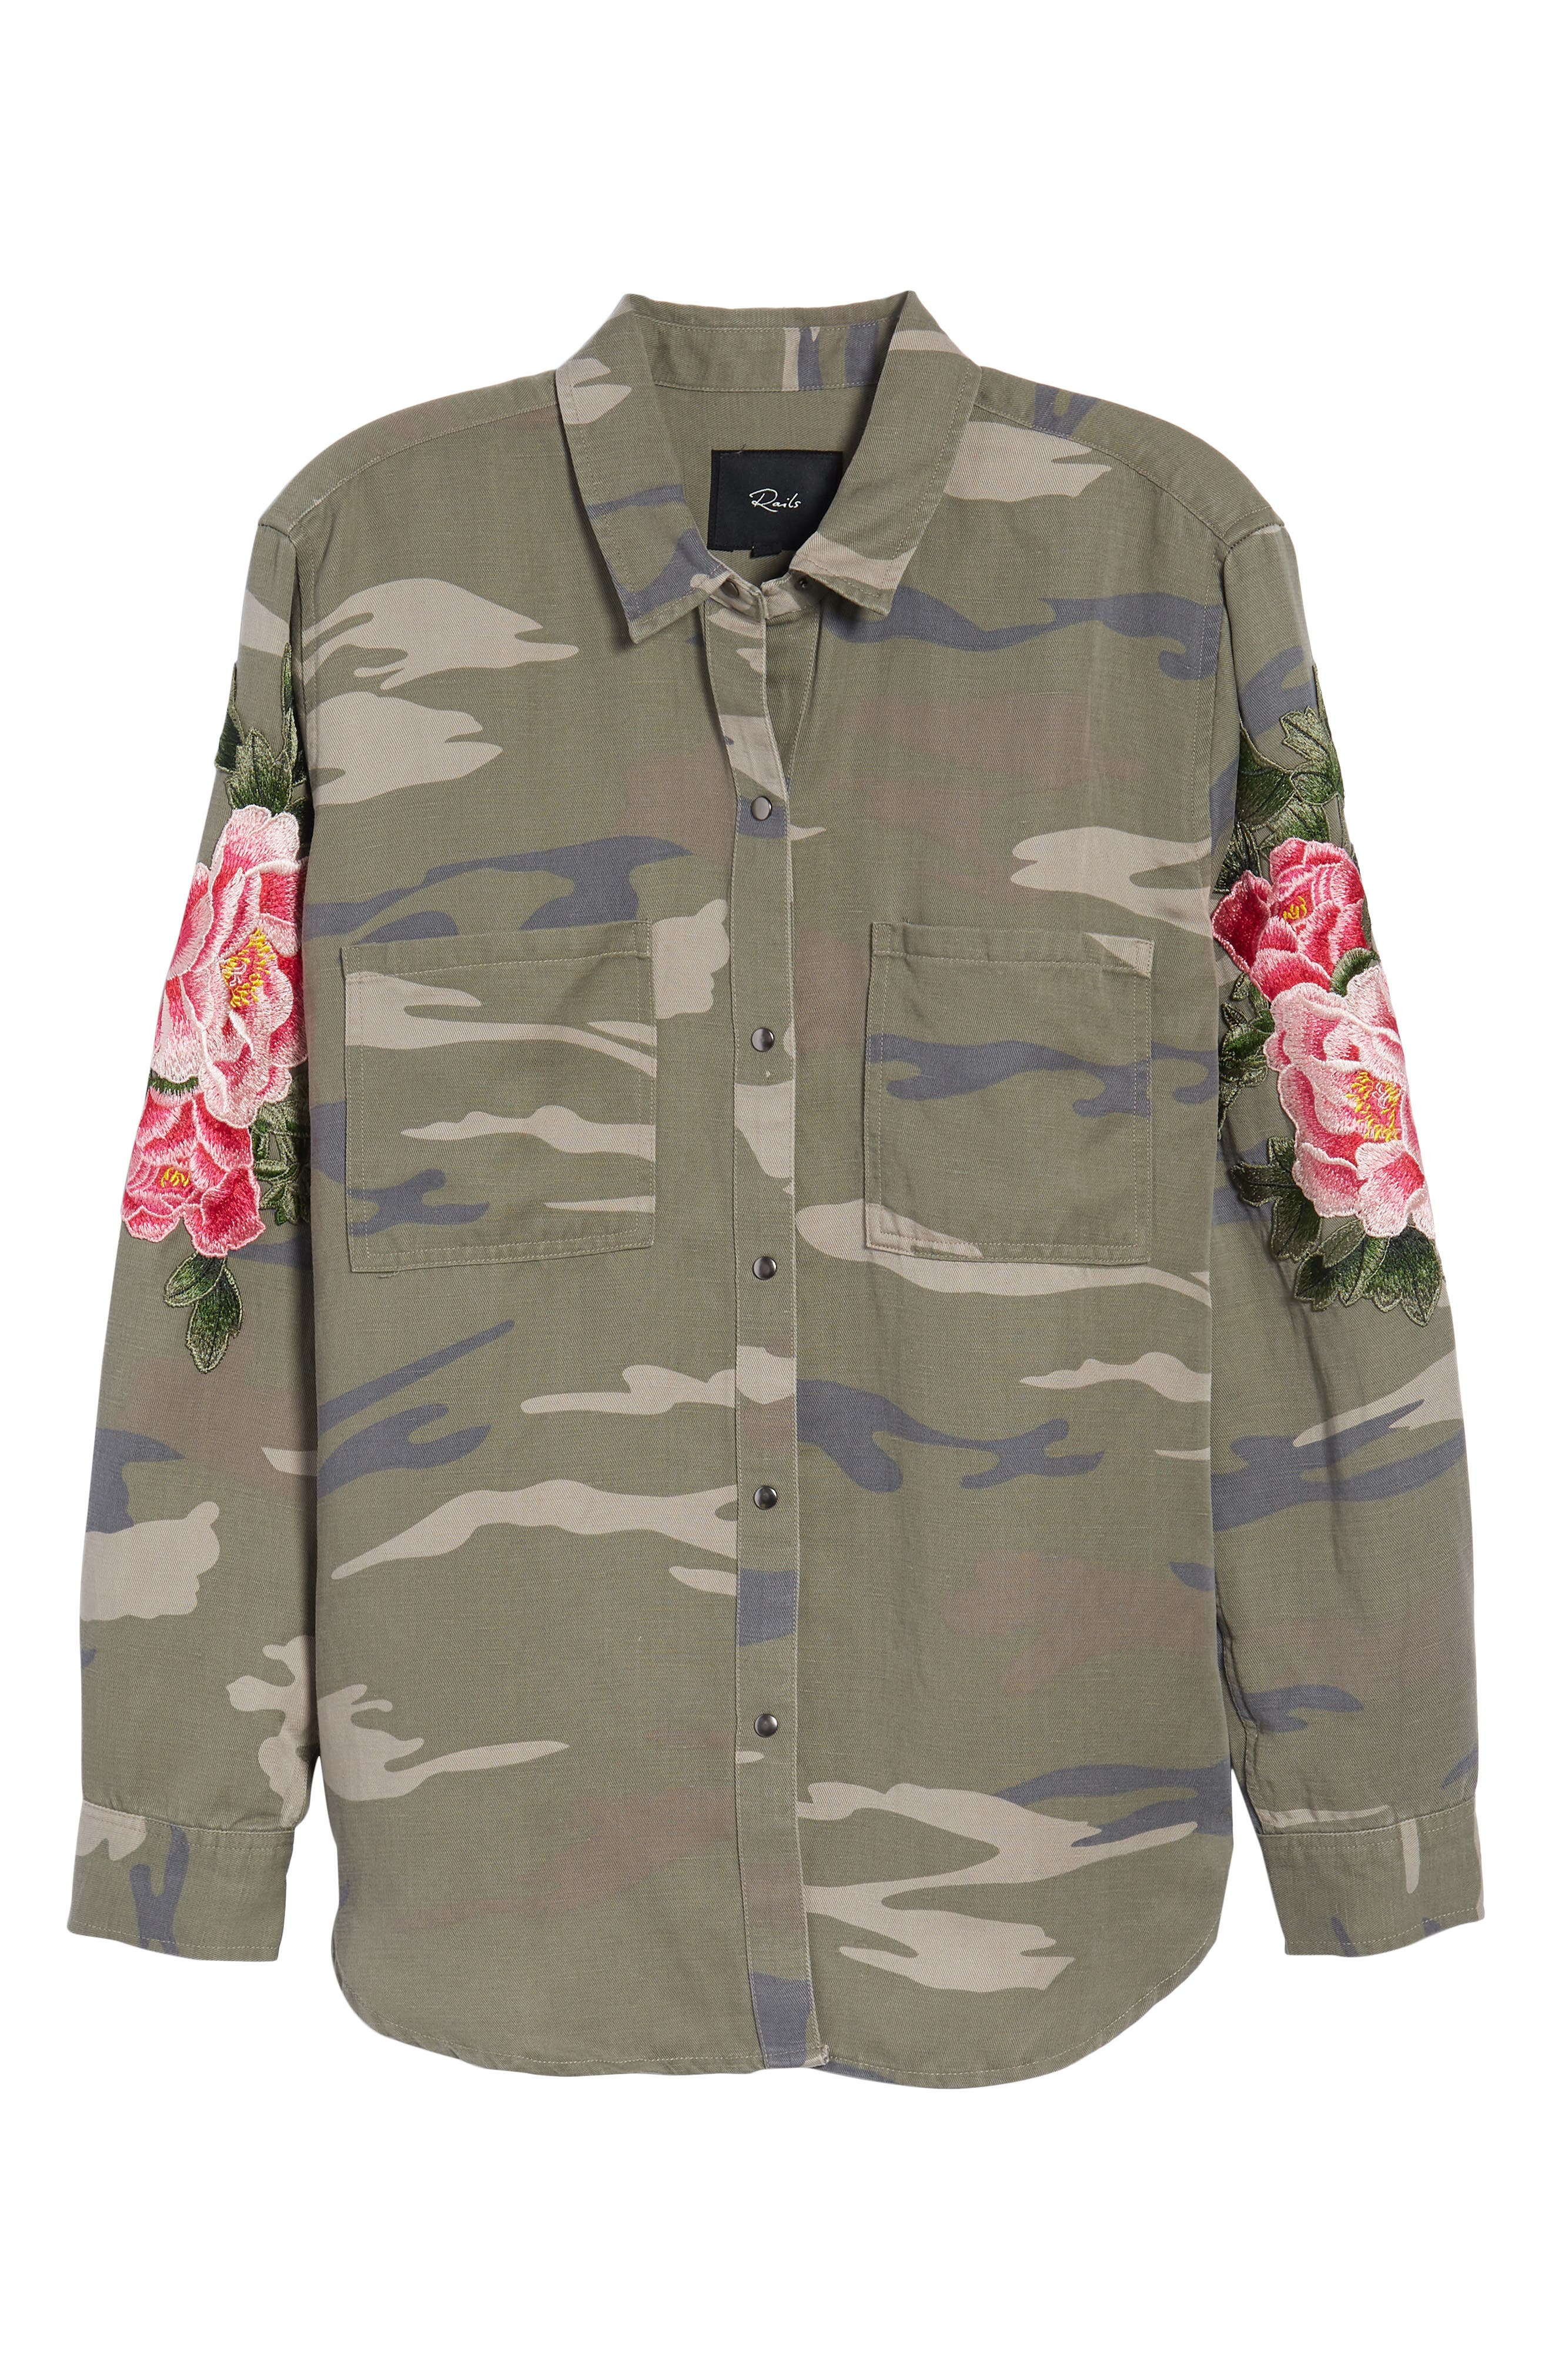 Marcel Embroidered Shirt,                             Alternate thumbnail 8, color,                             Sage Camo With Floral